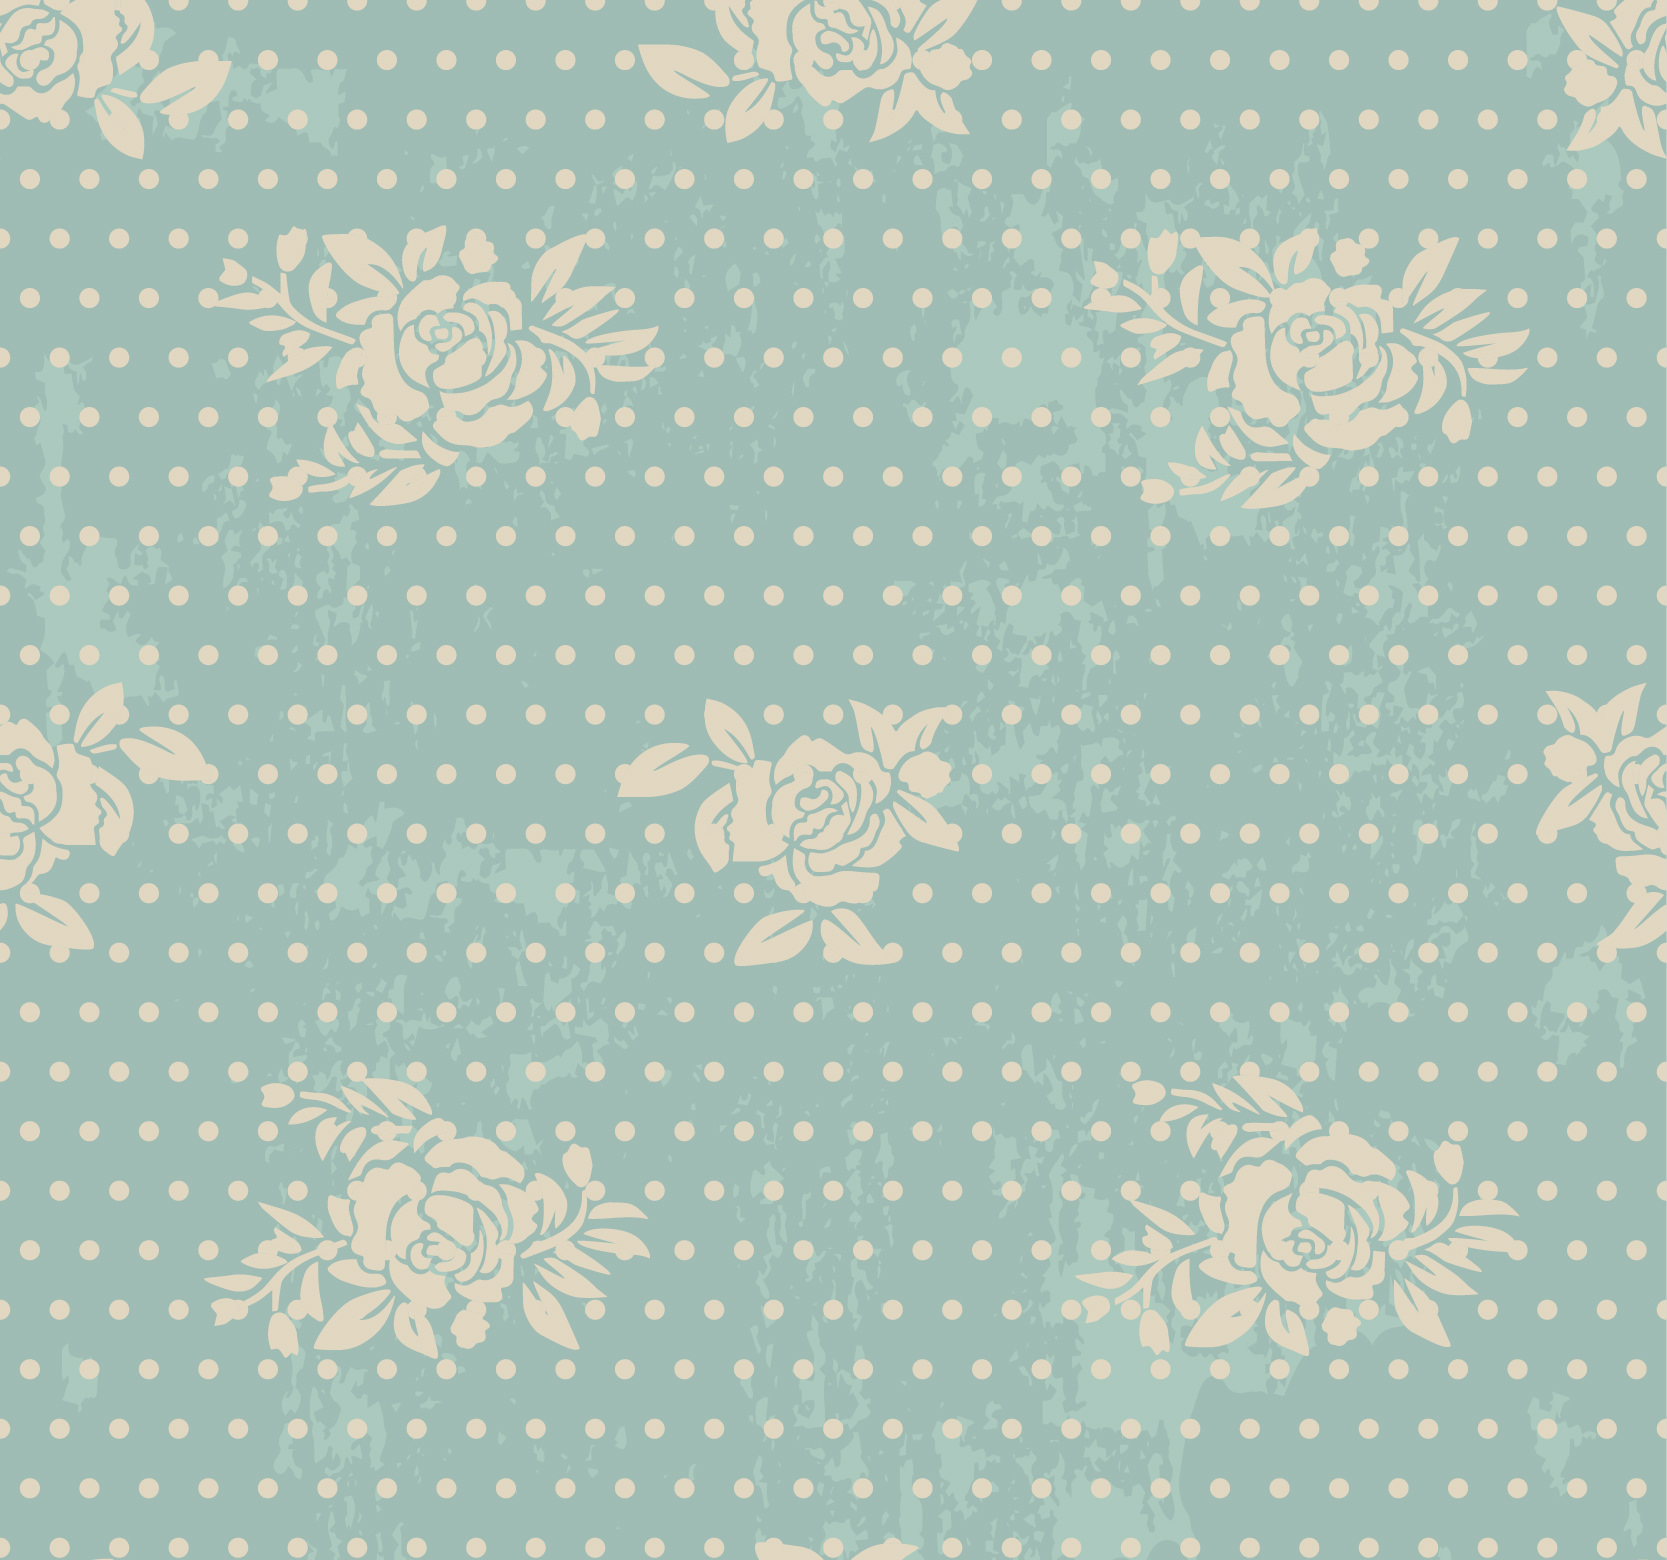 Retro Seamless Floral Patterns